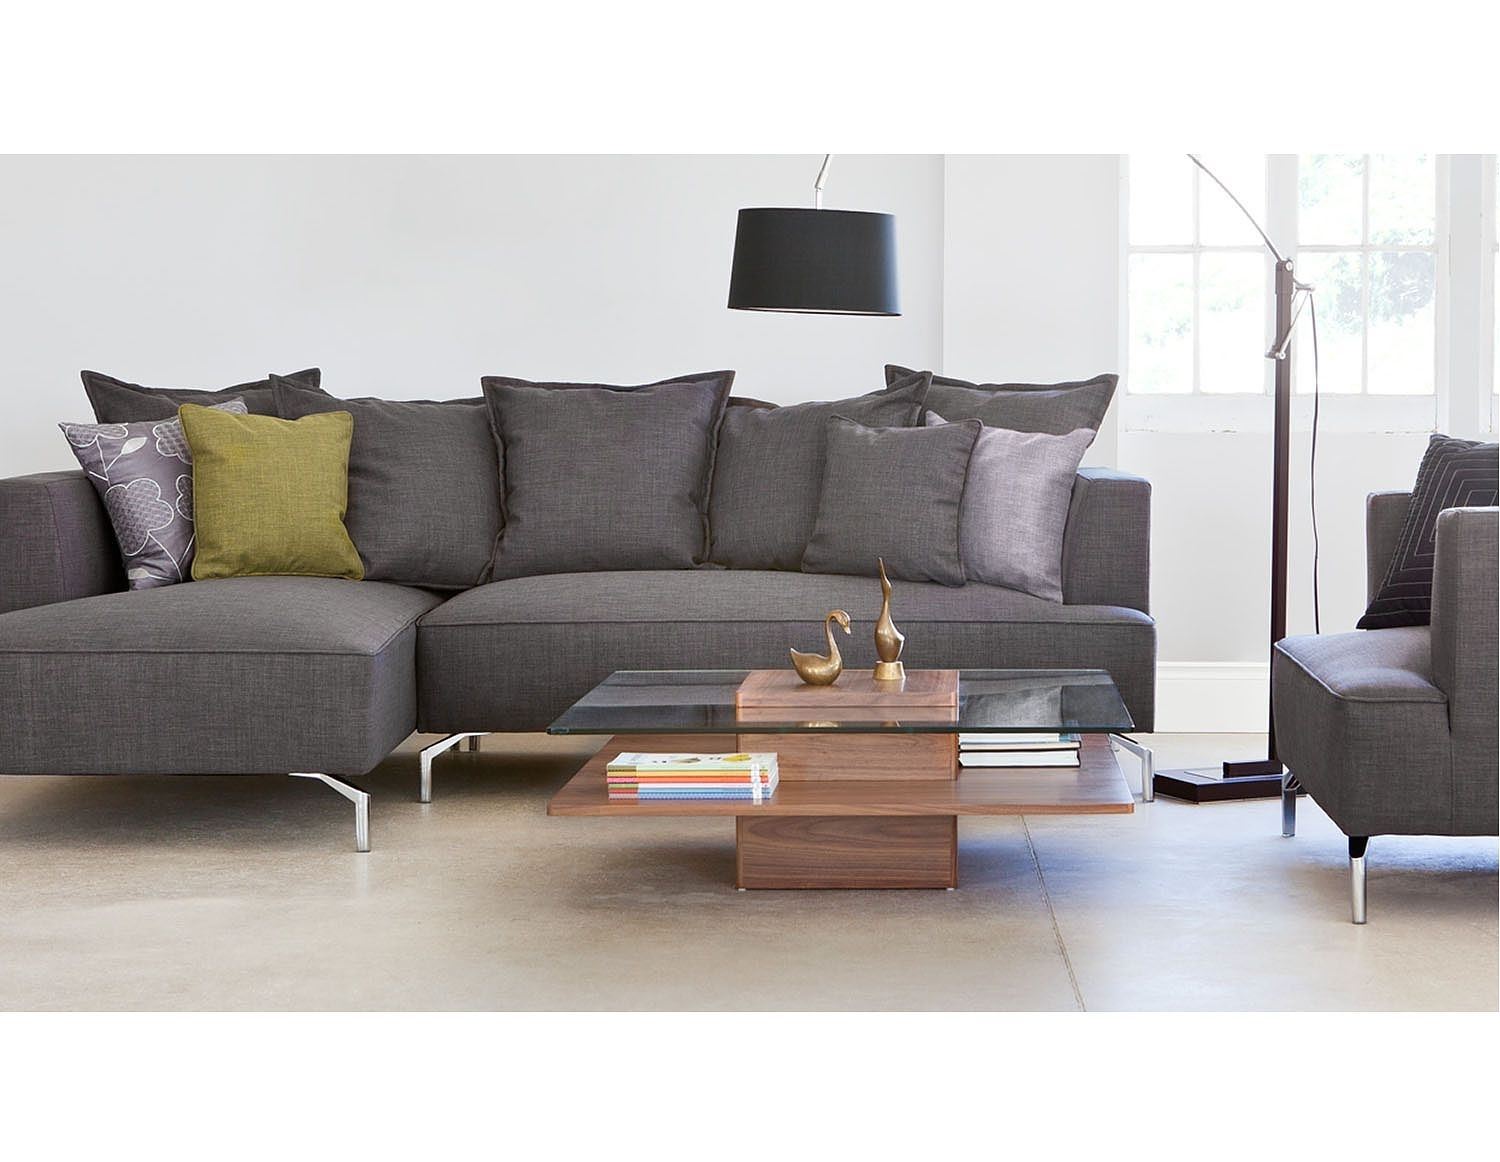 Structube – Lighting : Floor Lamps : Curva (Dark Brown) | Patti's For Structube Sectional Sofas (Image 5 of 10)